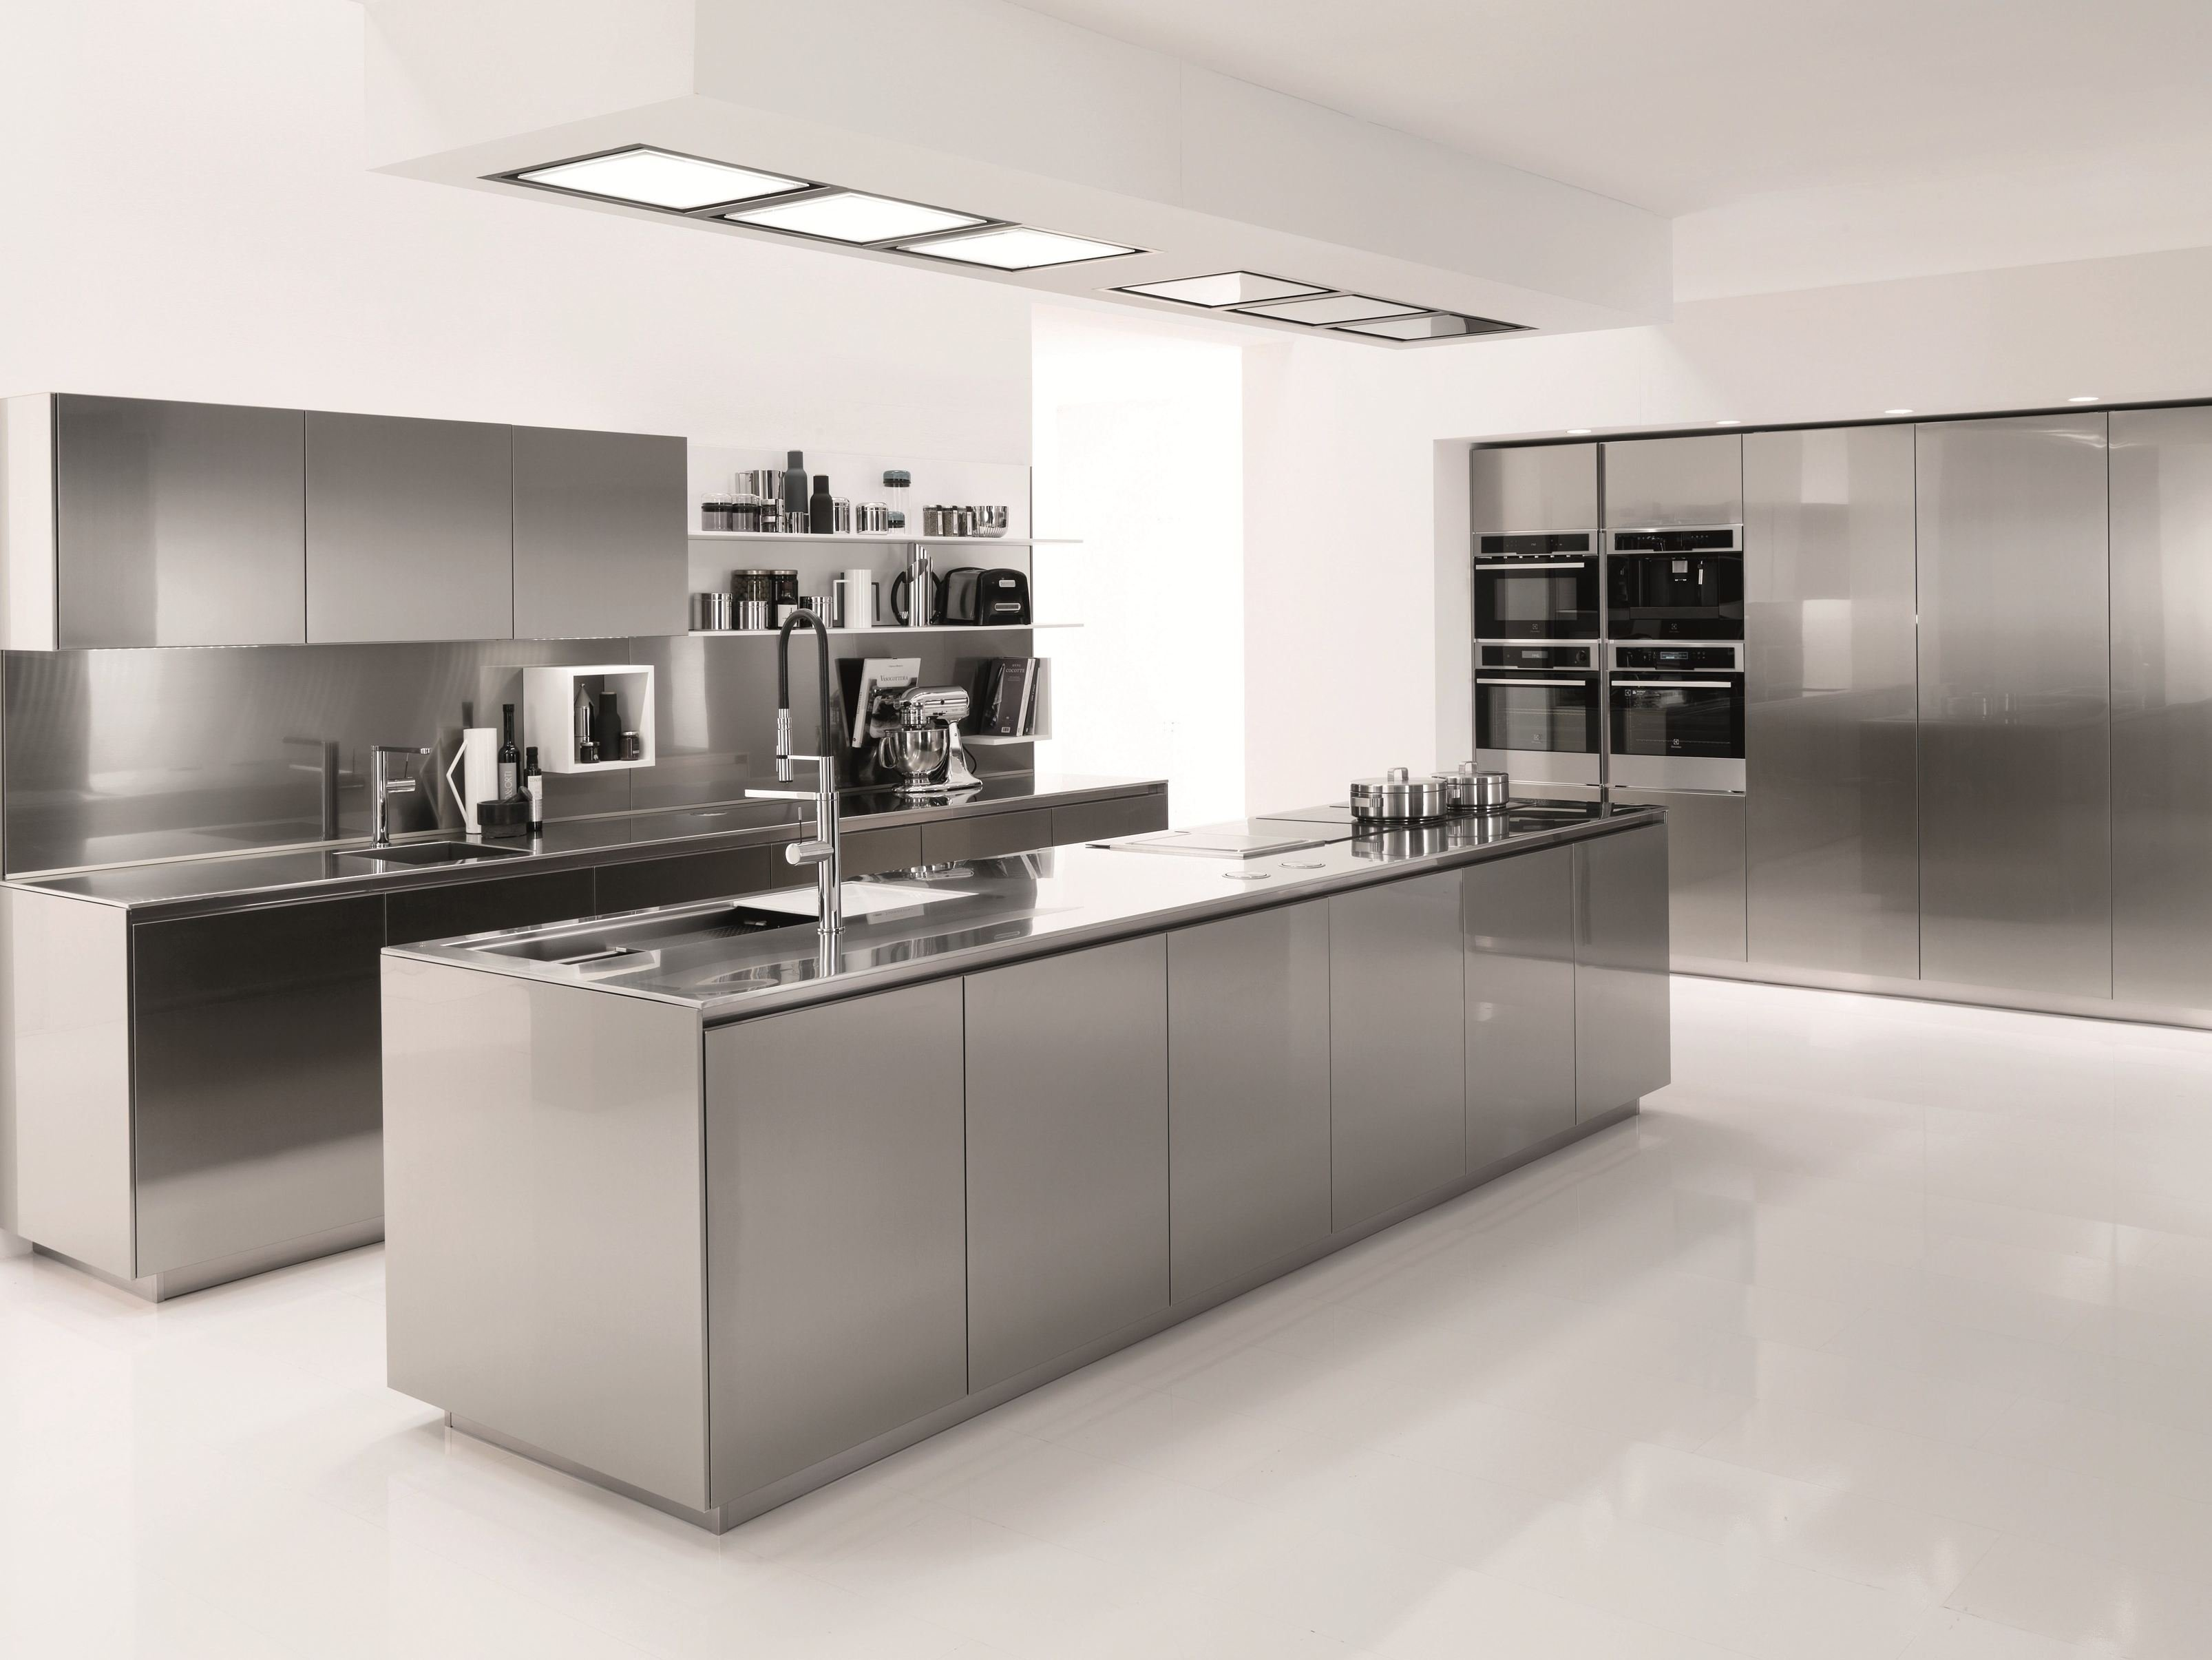 Stainless steel kitchen filofree steel by euromobil design for Puertas de cocina modernas